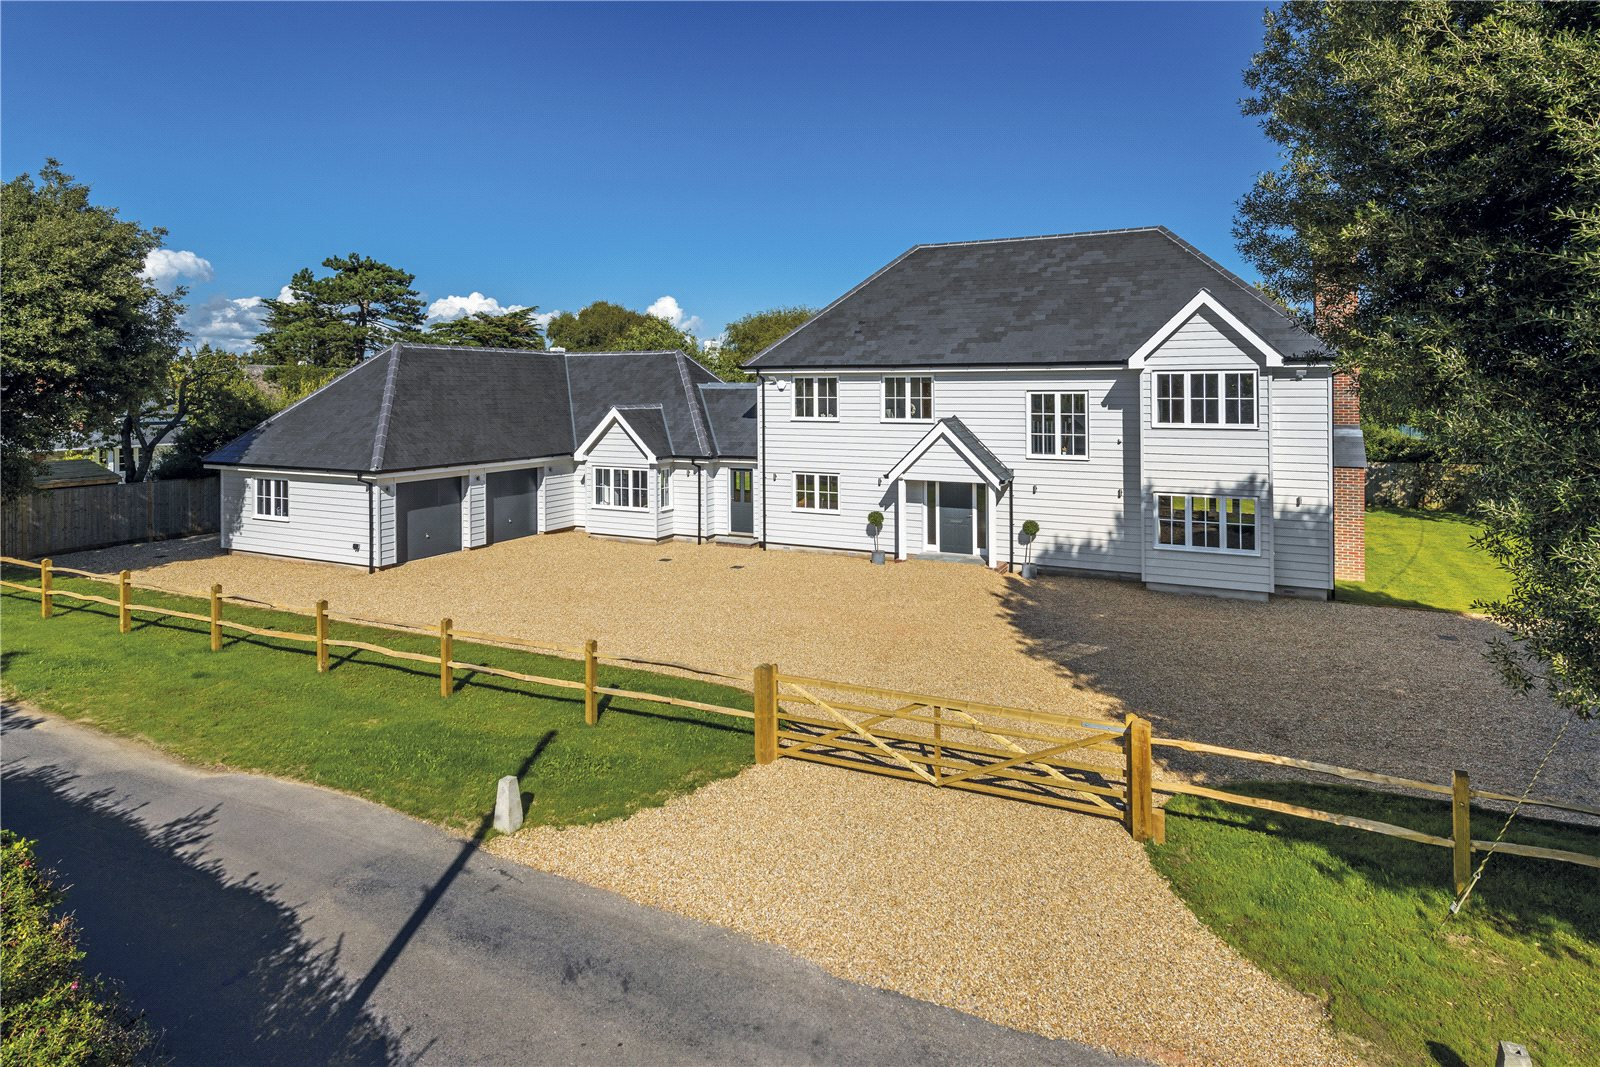 Single Family Home for Sale at Roman Landing, West Wittering, Chichester, West Sussex, PO20 Chichester, England